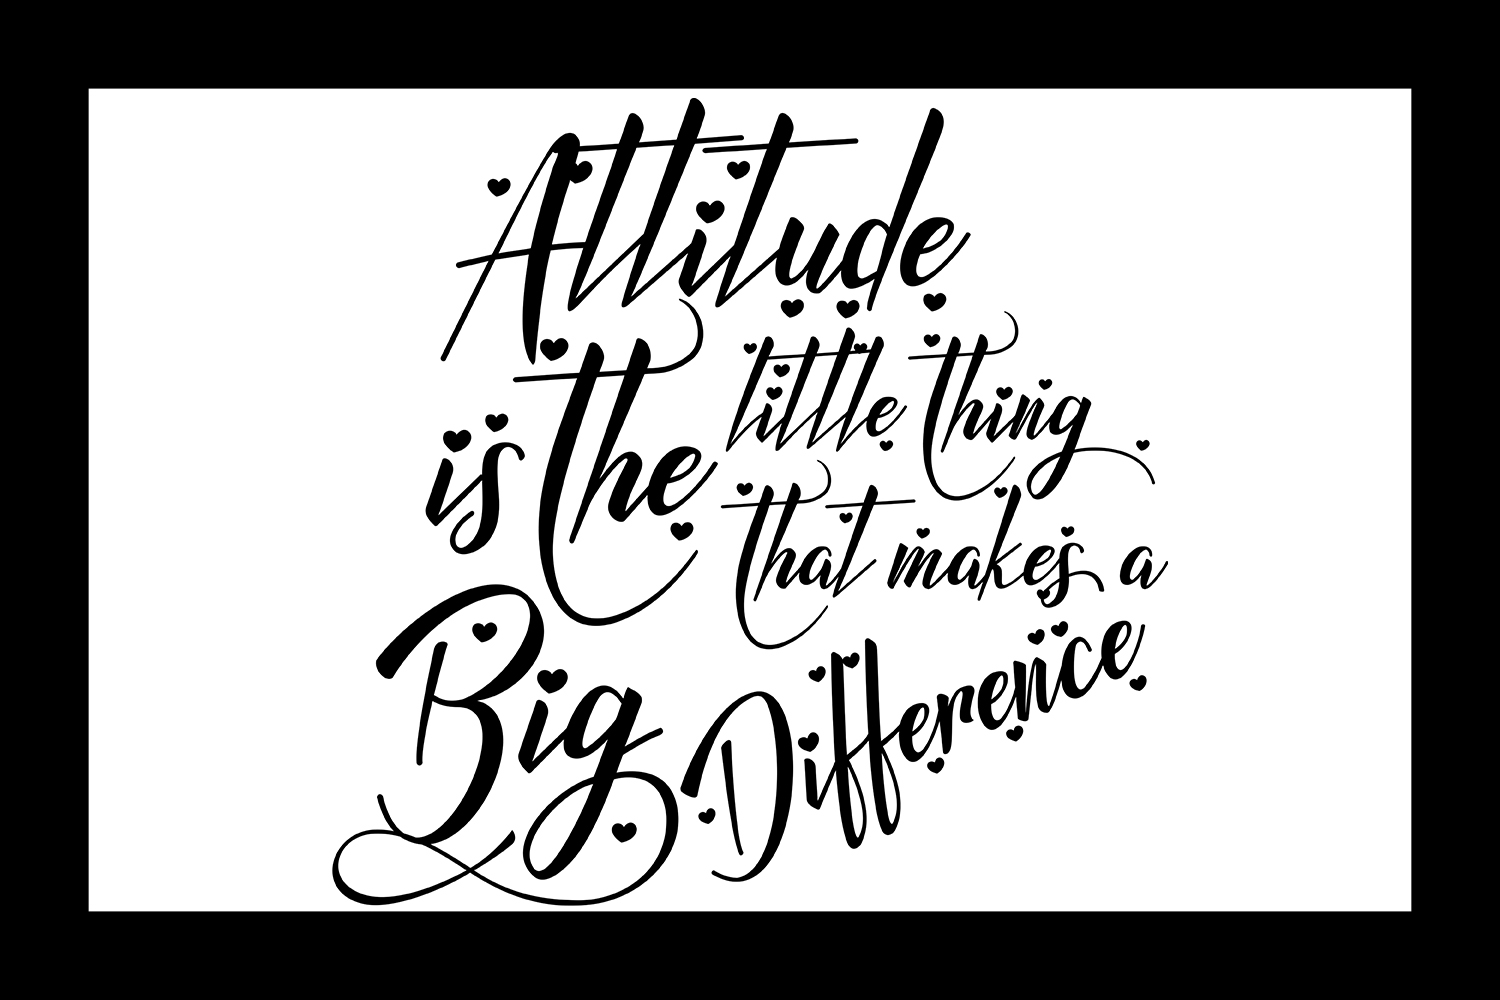 Inspirational Quote - Attitude is the Little Thing that Makes a Big Difference example image 2